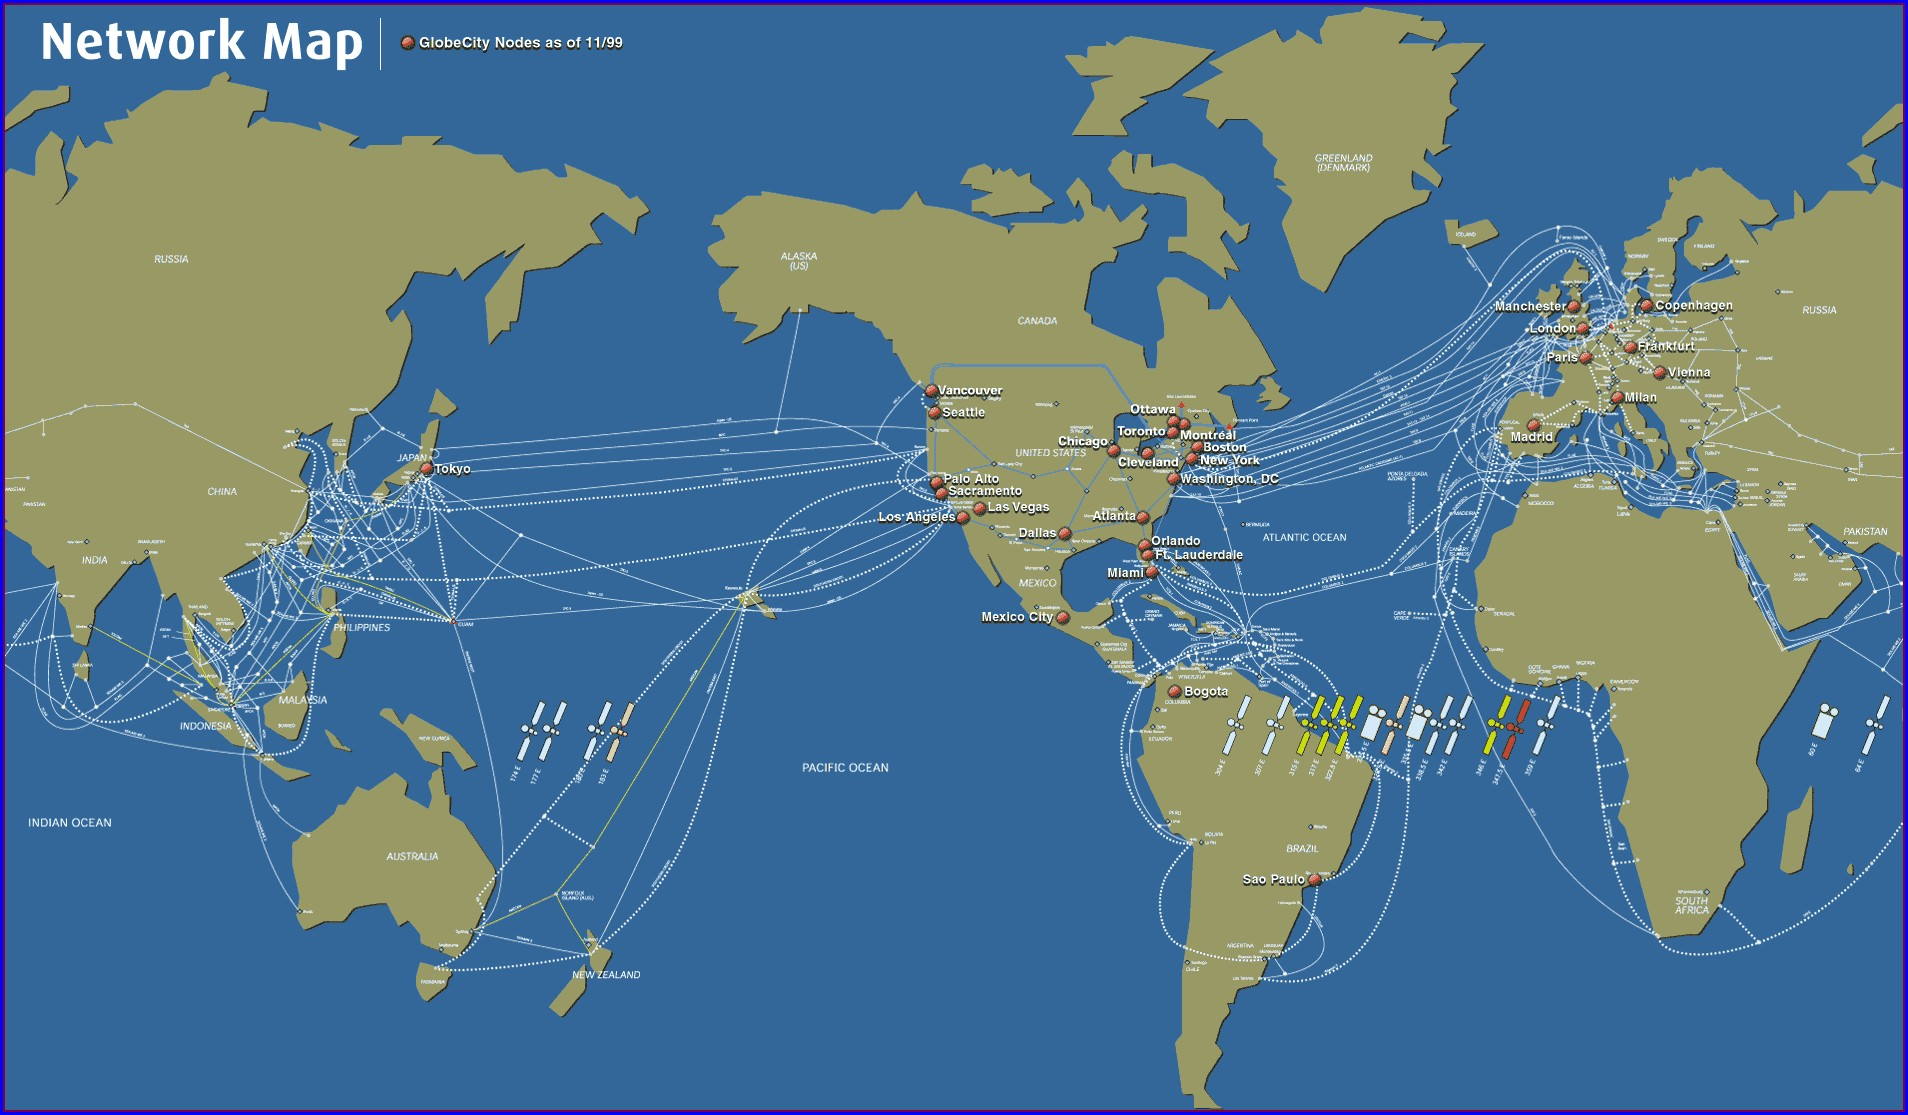 Terrestrial Fiber Optic Cable Map Africa